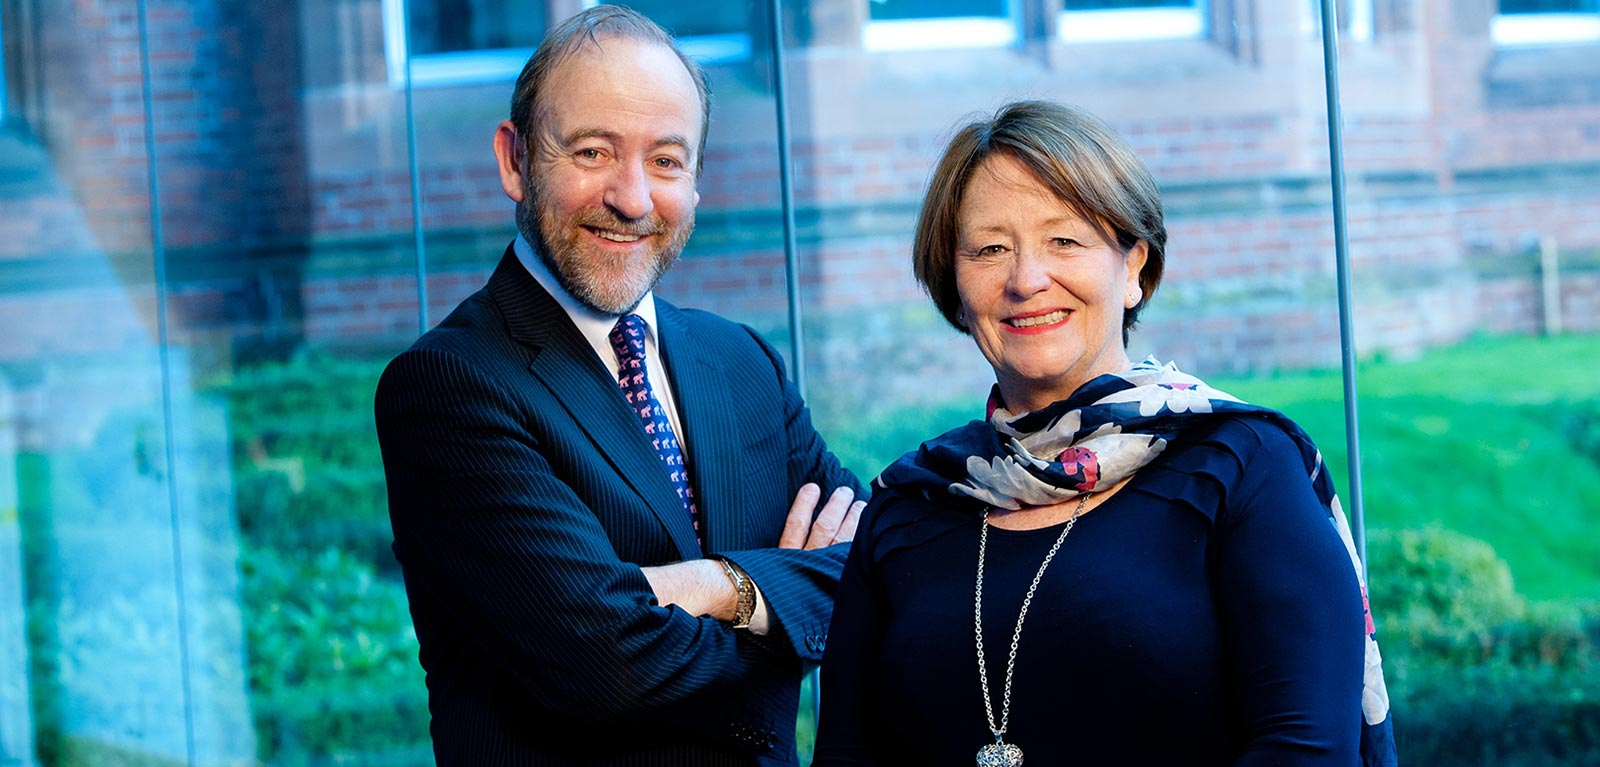 Thomas Hunter Magowan, Chief Executive of InterTradeIreland, and Anne Clydesdale, Director of the William J Clinton Leadership Institute at Queen's University